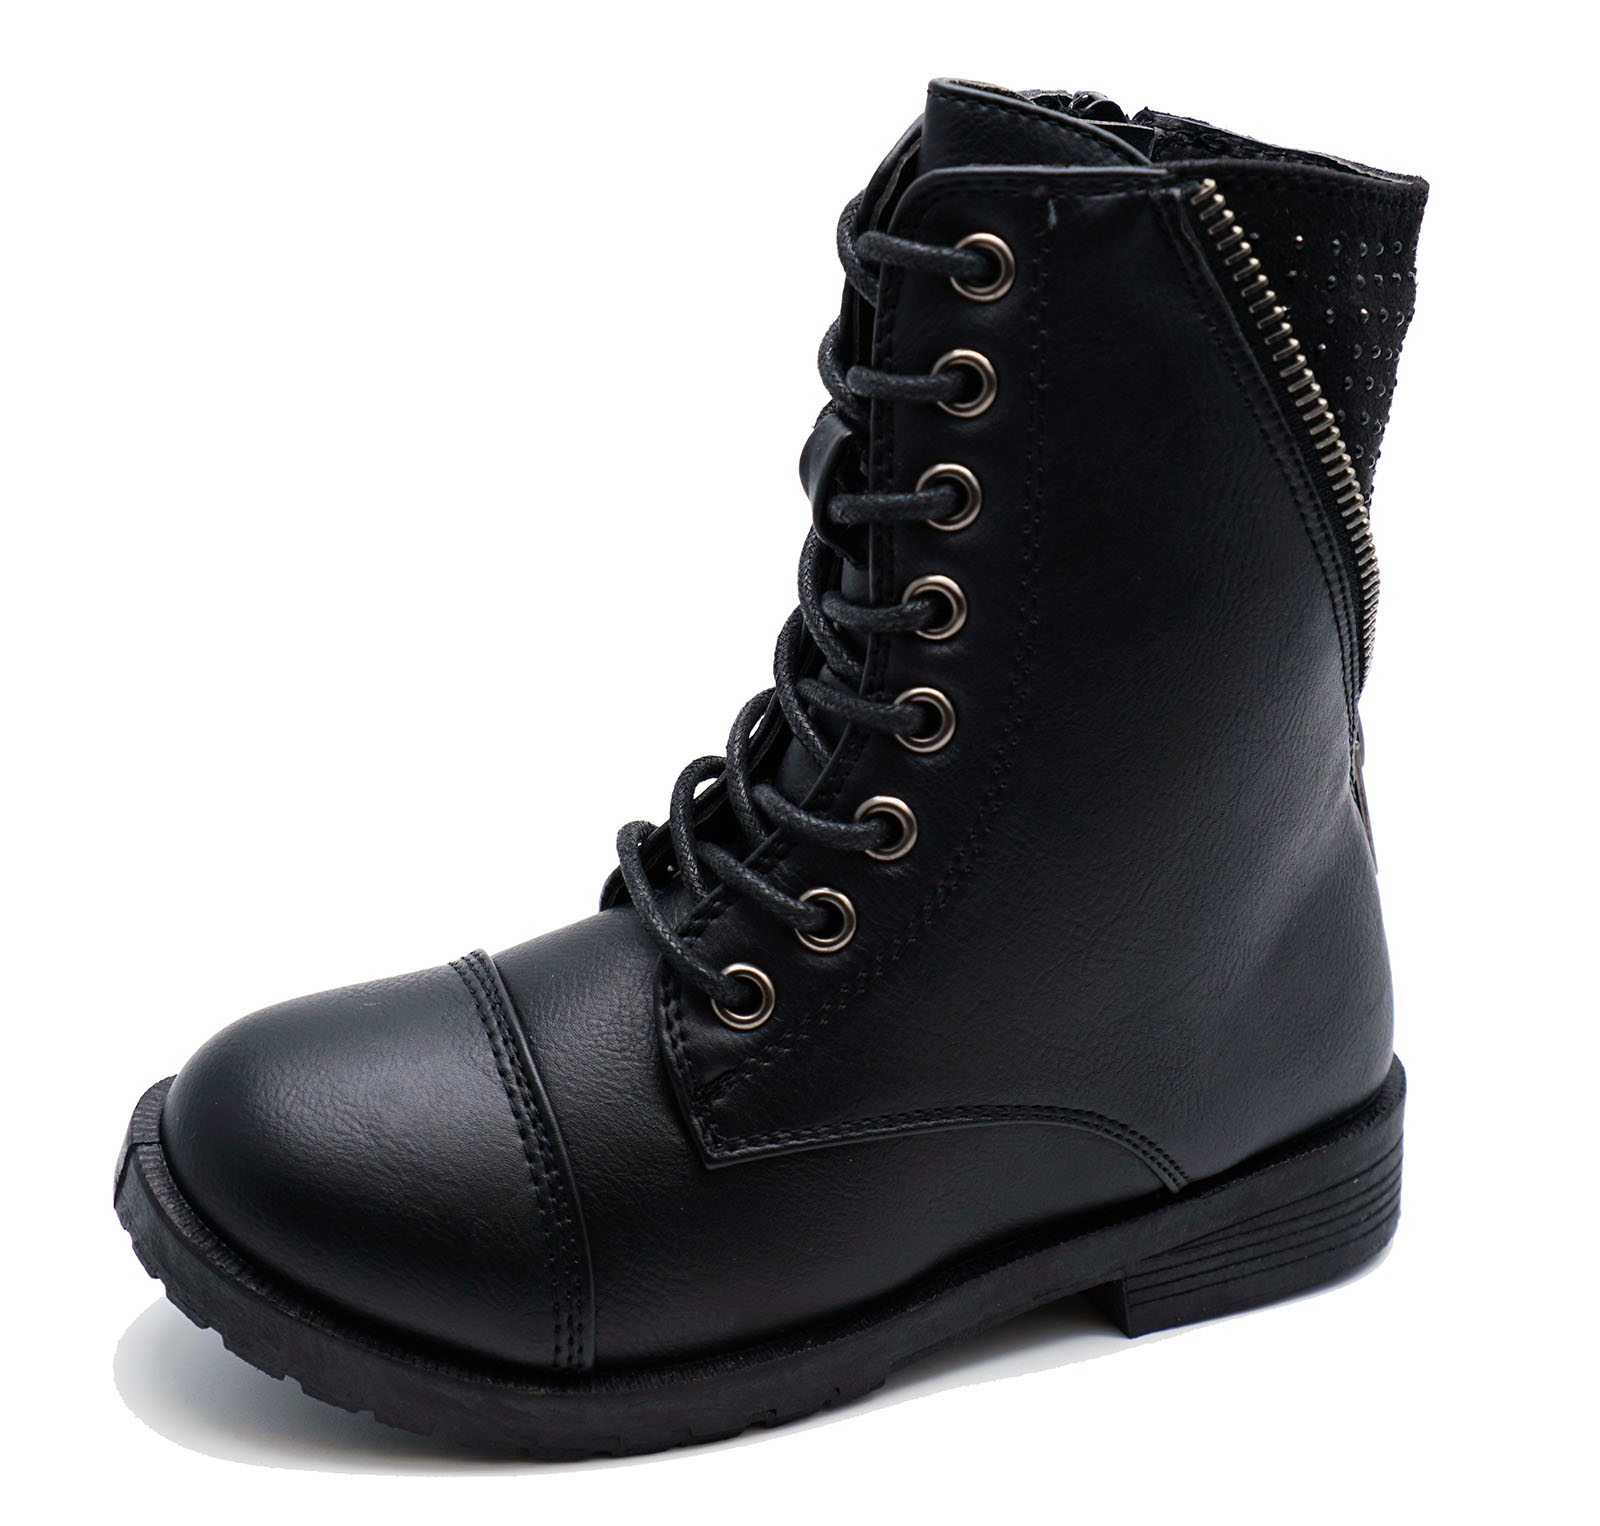 SCHOOL ZIP-UP CALF ANKLE BOOTS SHOES